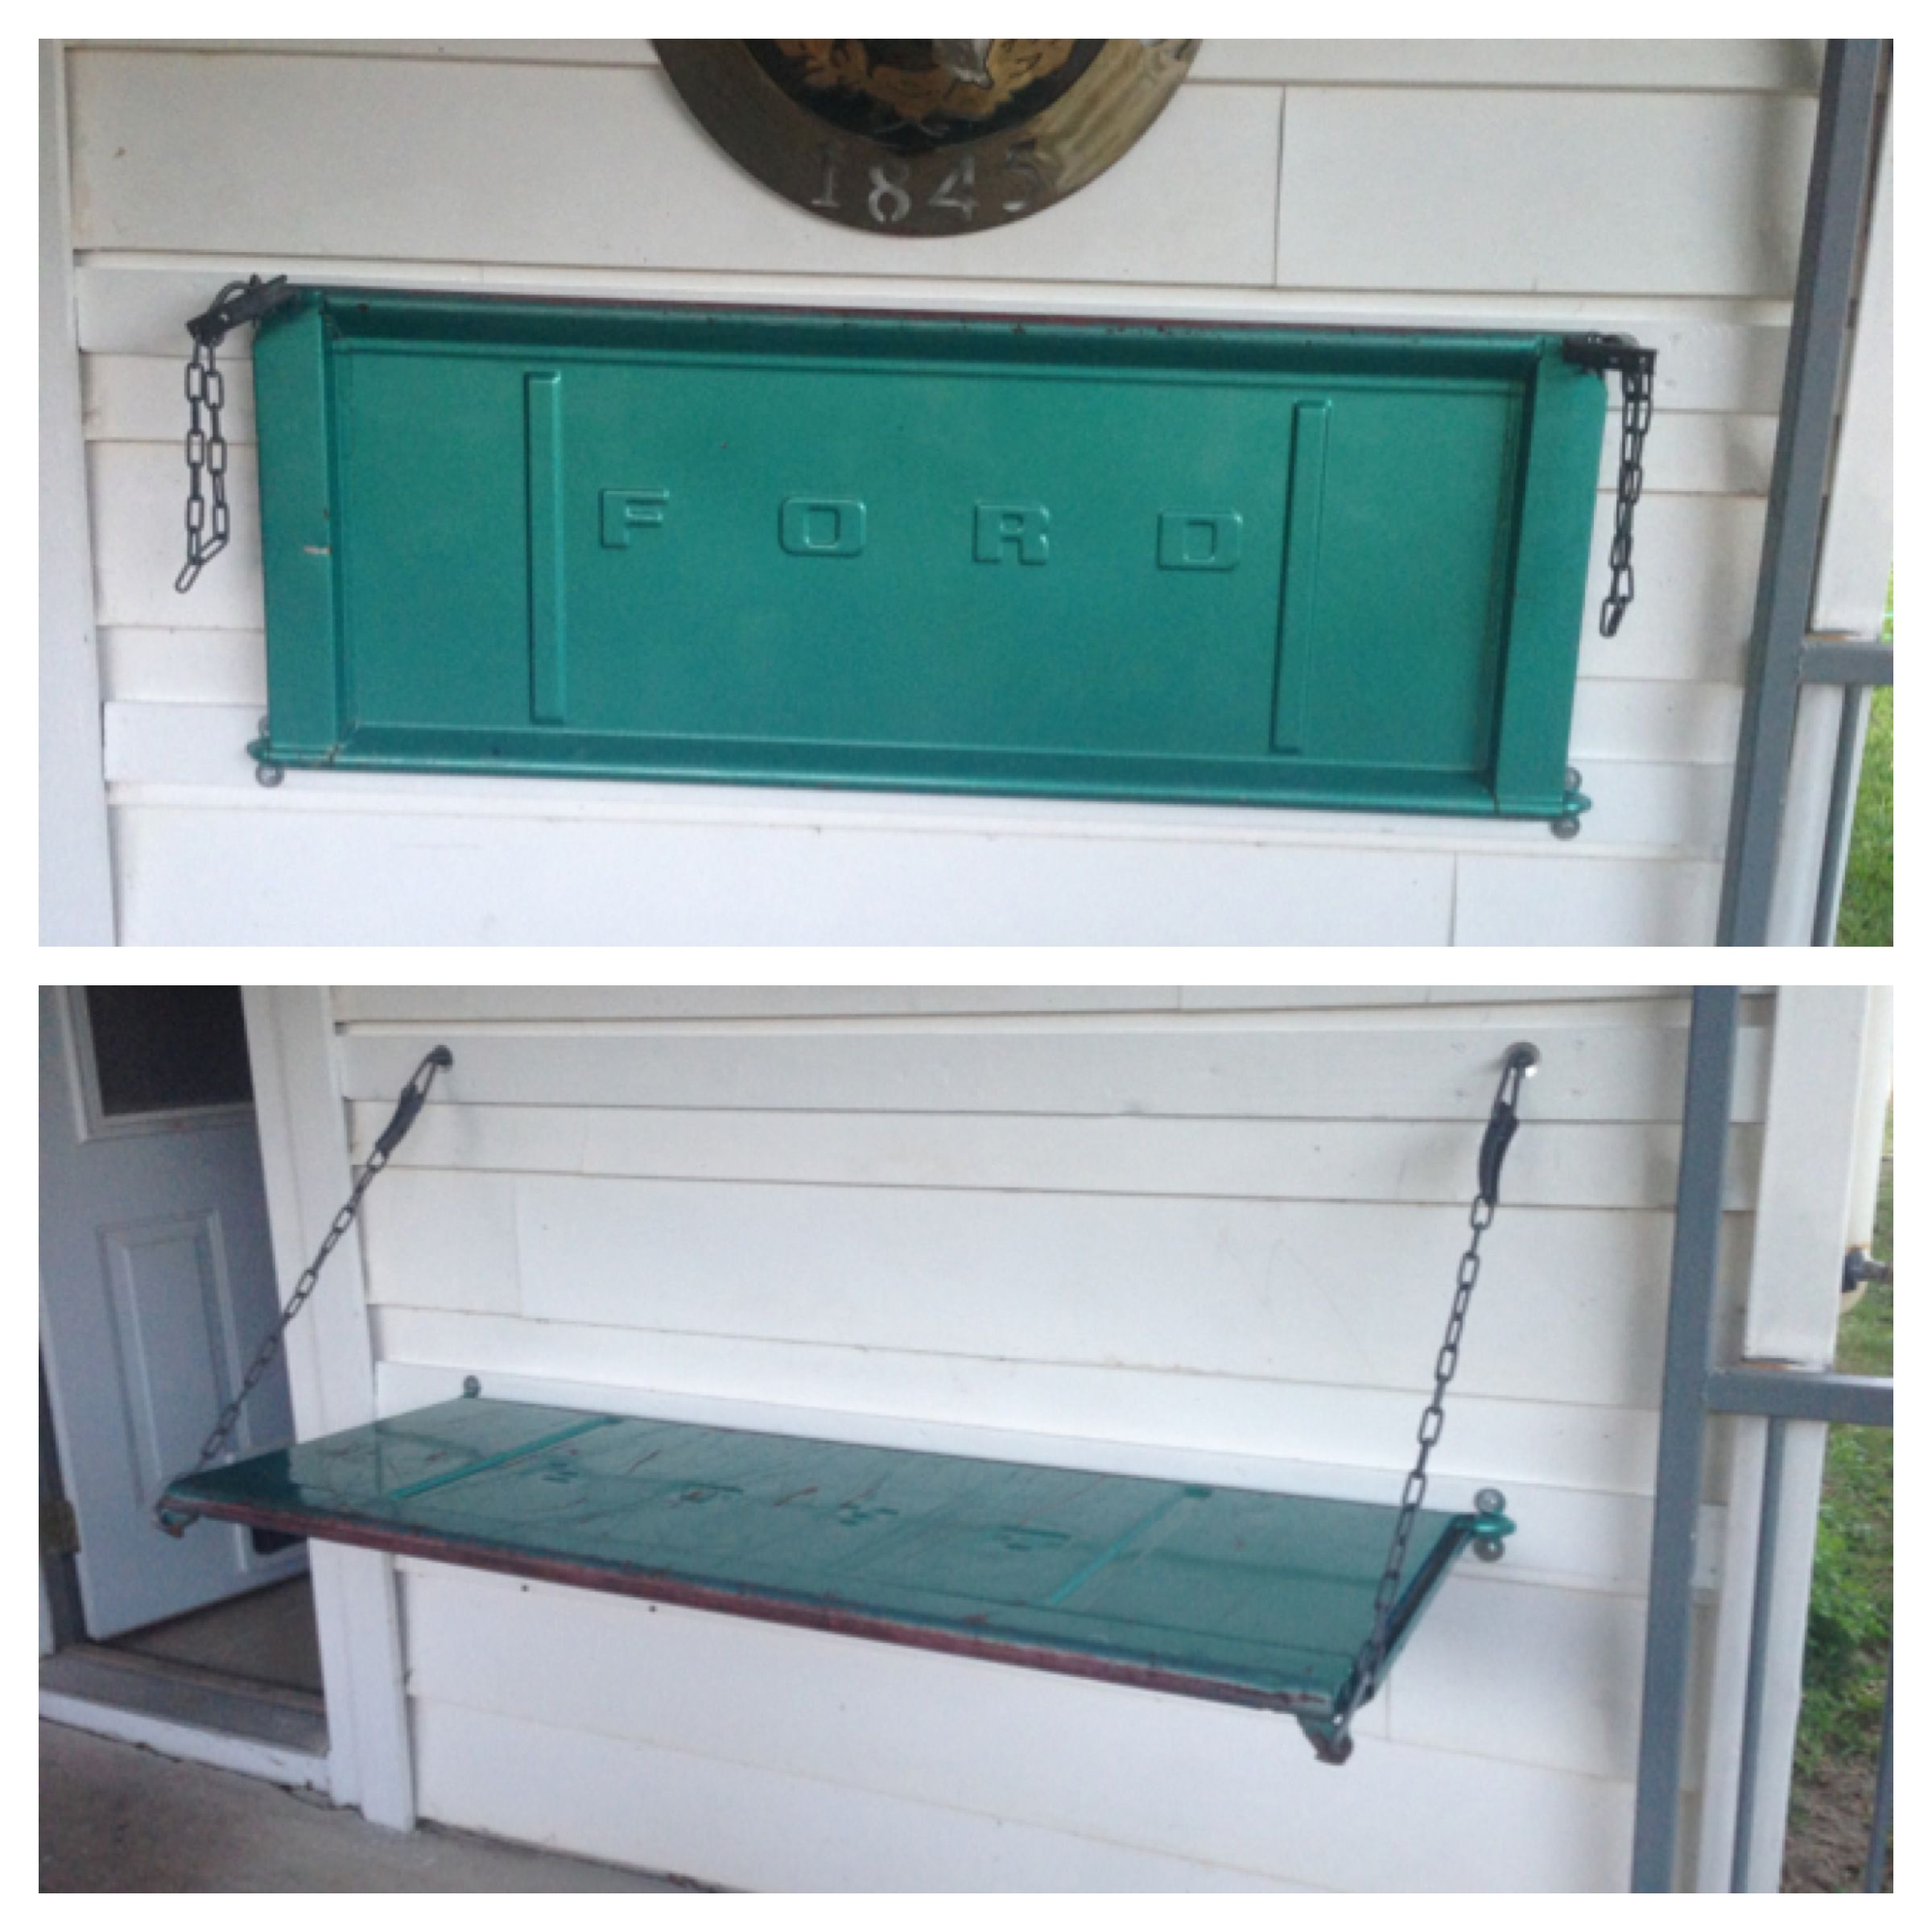 Pin By Olivia Garmon On Tail Gate Bench Diy Tailgate Bench Home Diy Truck Tailgate Bench